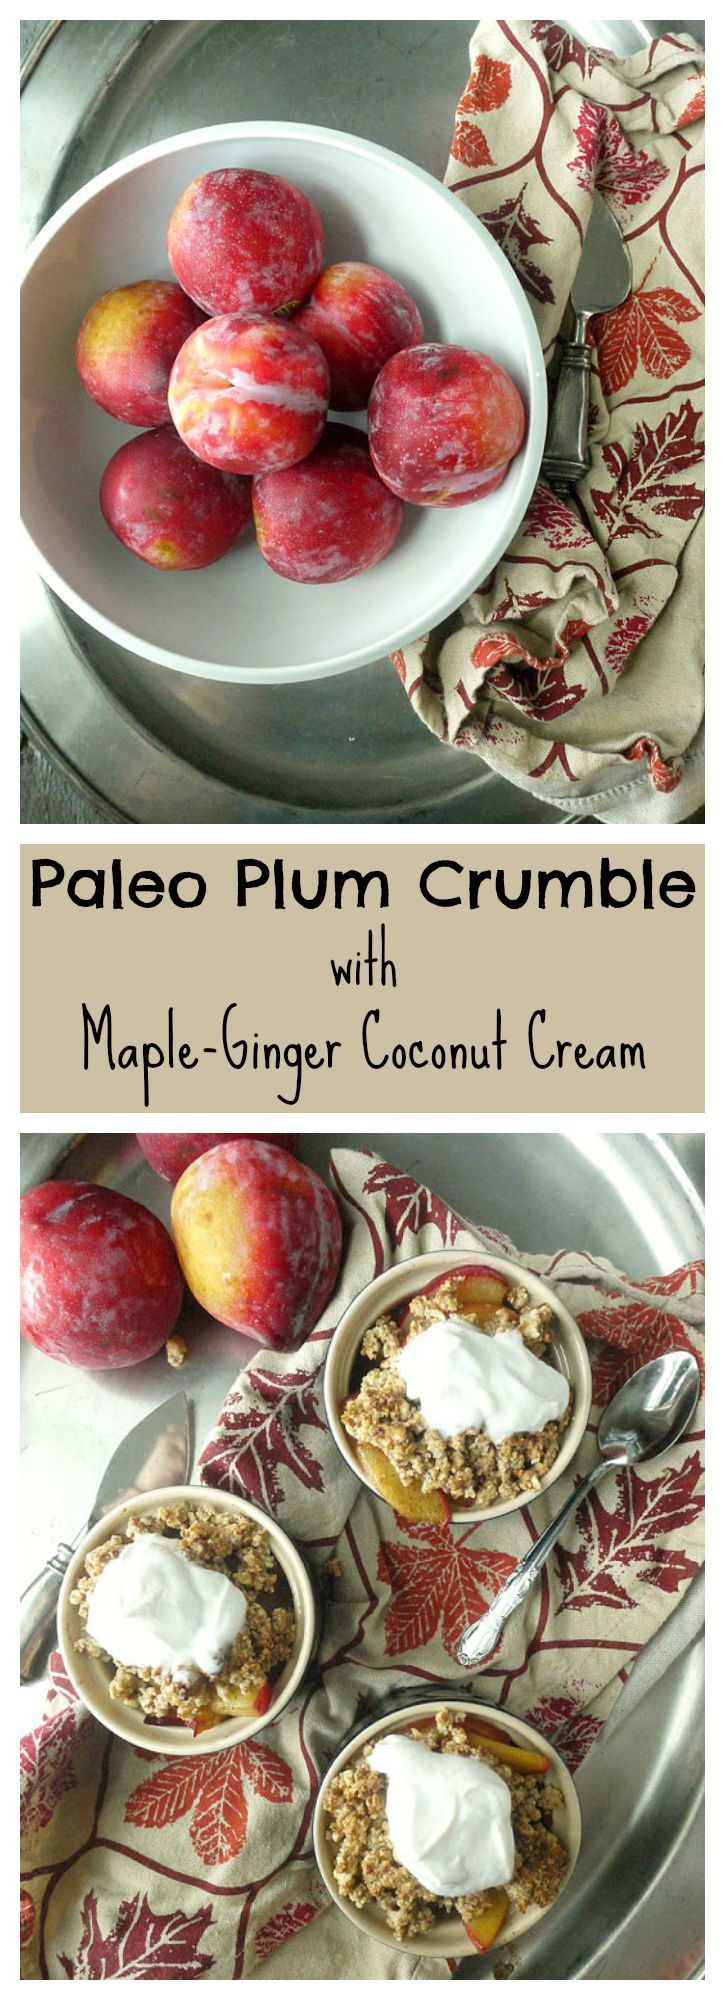 This delectable dessert is #paleo and #vegan! It's a great way to use ...